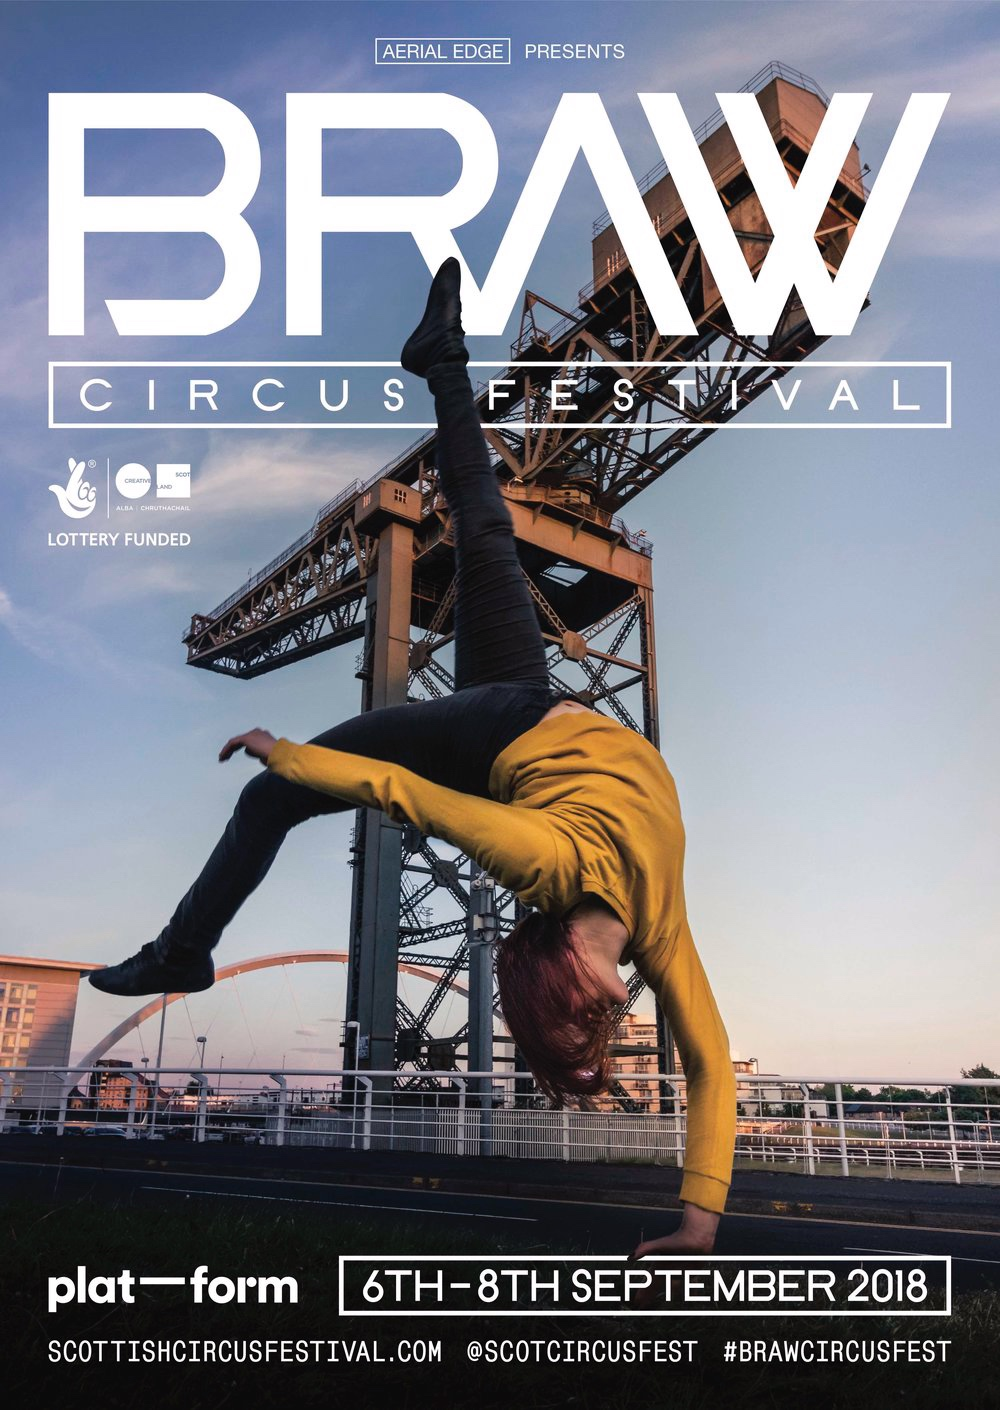 Braw Circus Festival 2018 | Poster design by  Scott MacMichael  | Photo by Richard Walker